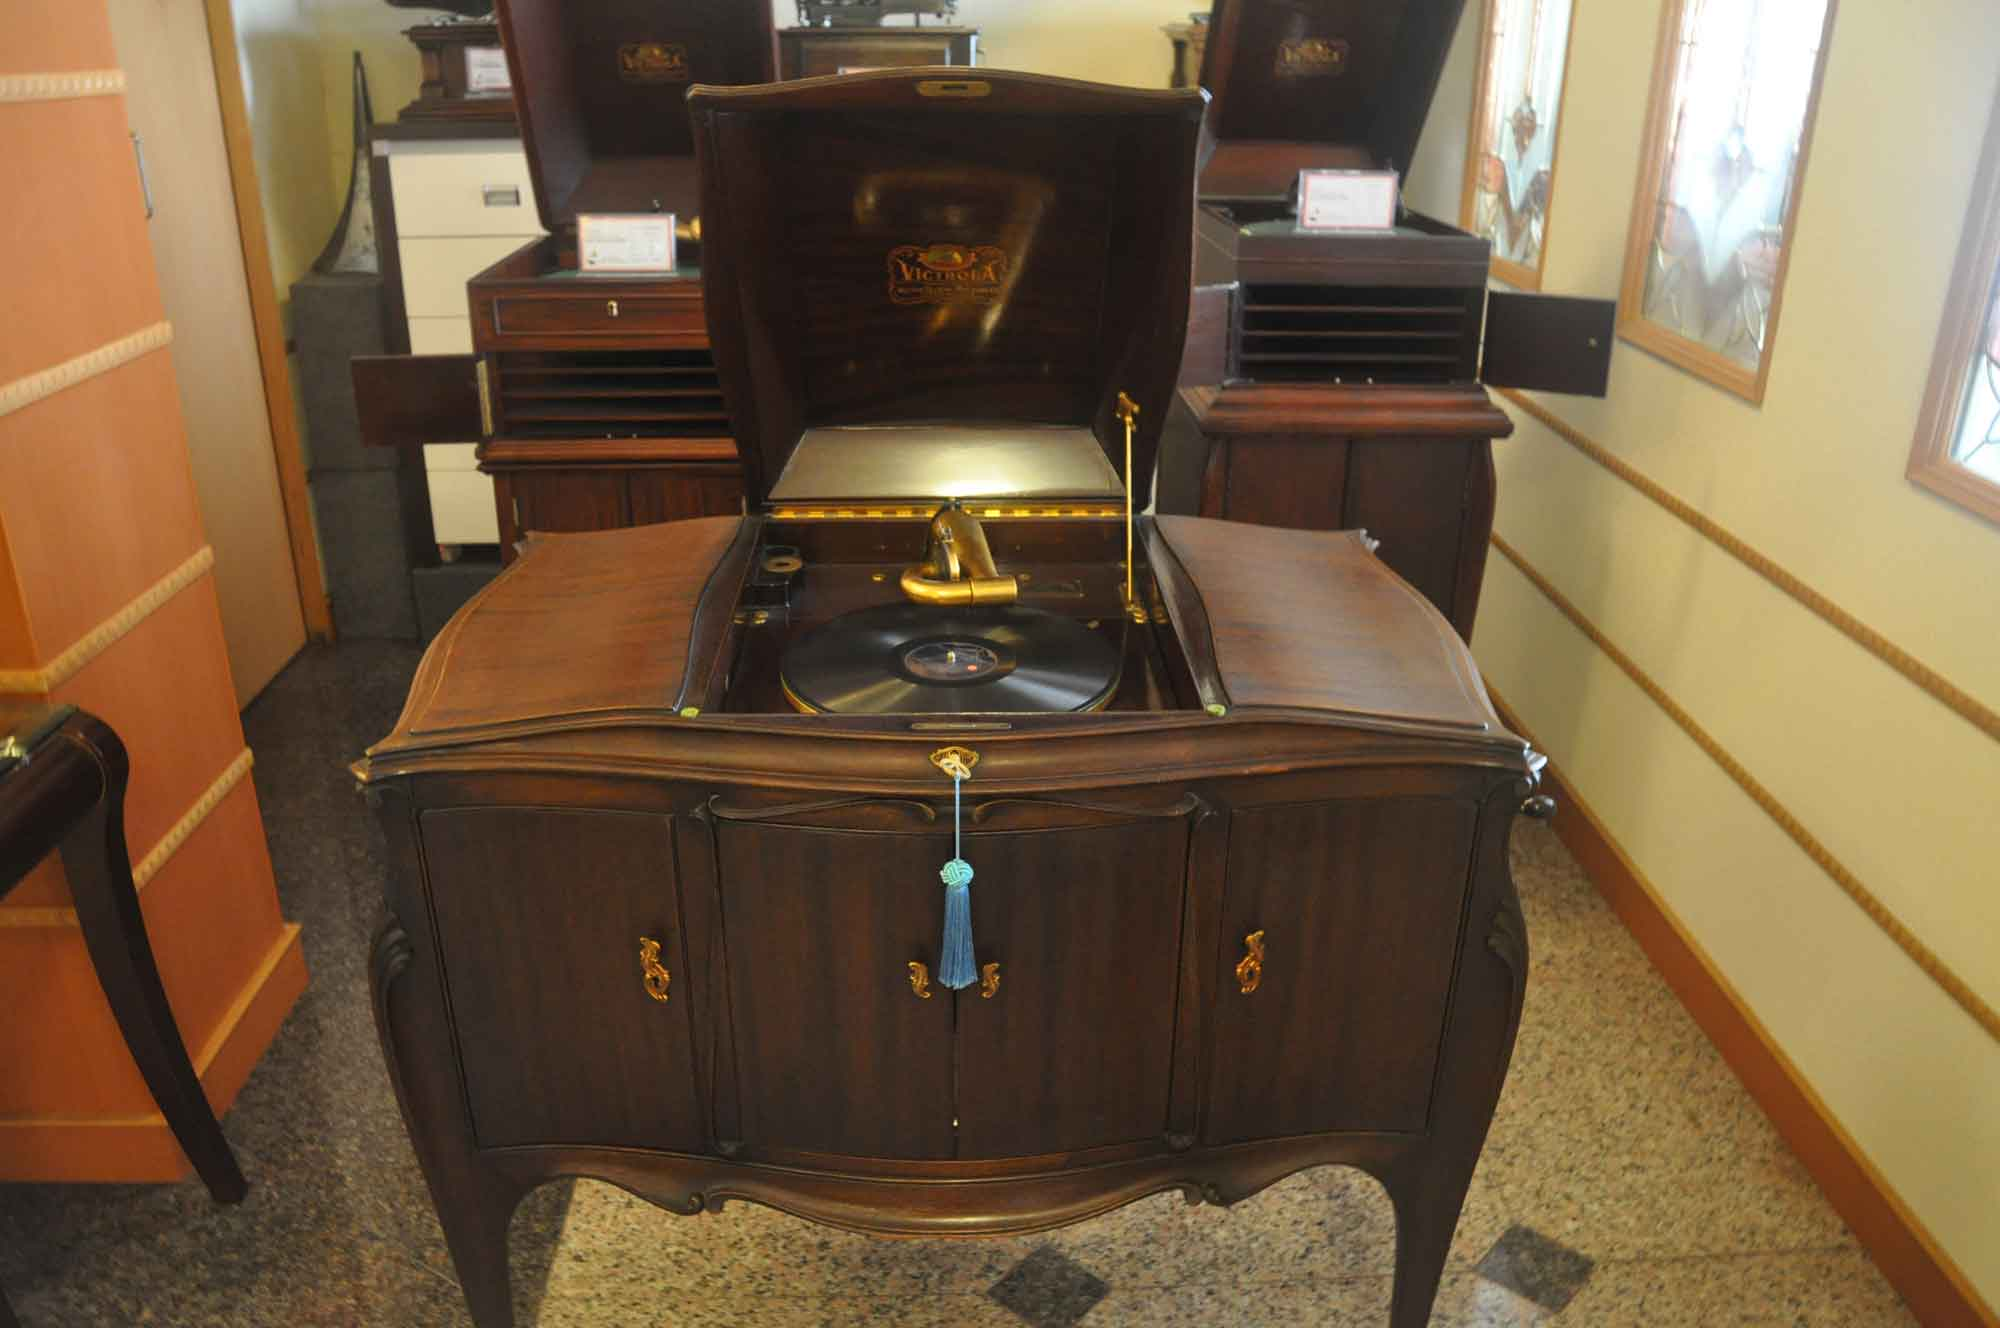 Vintage Sounds Museum record player